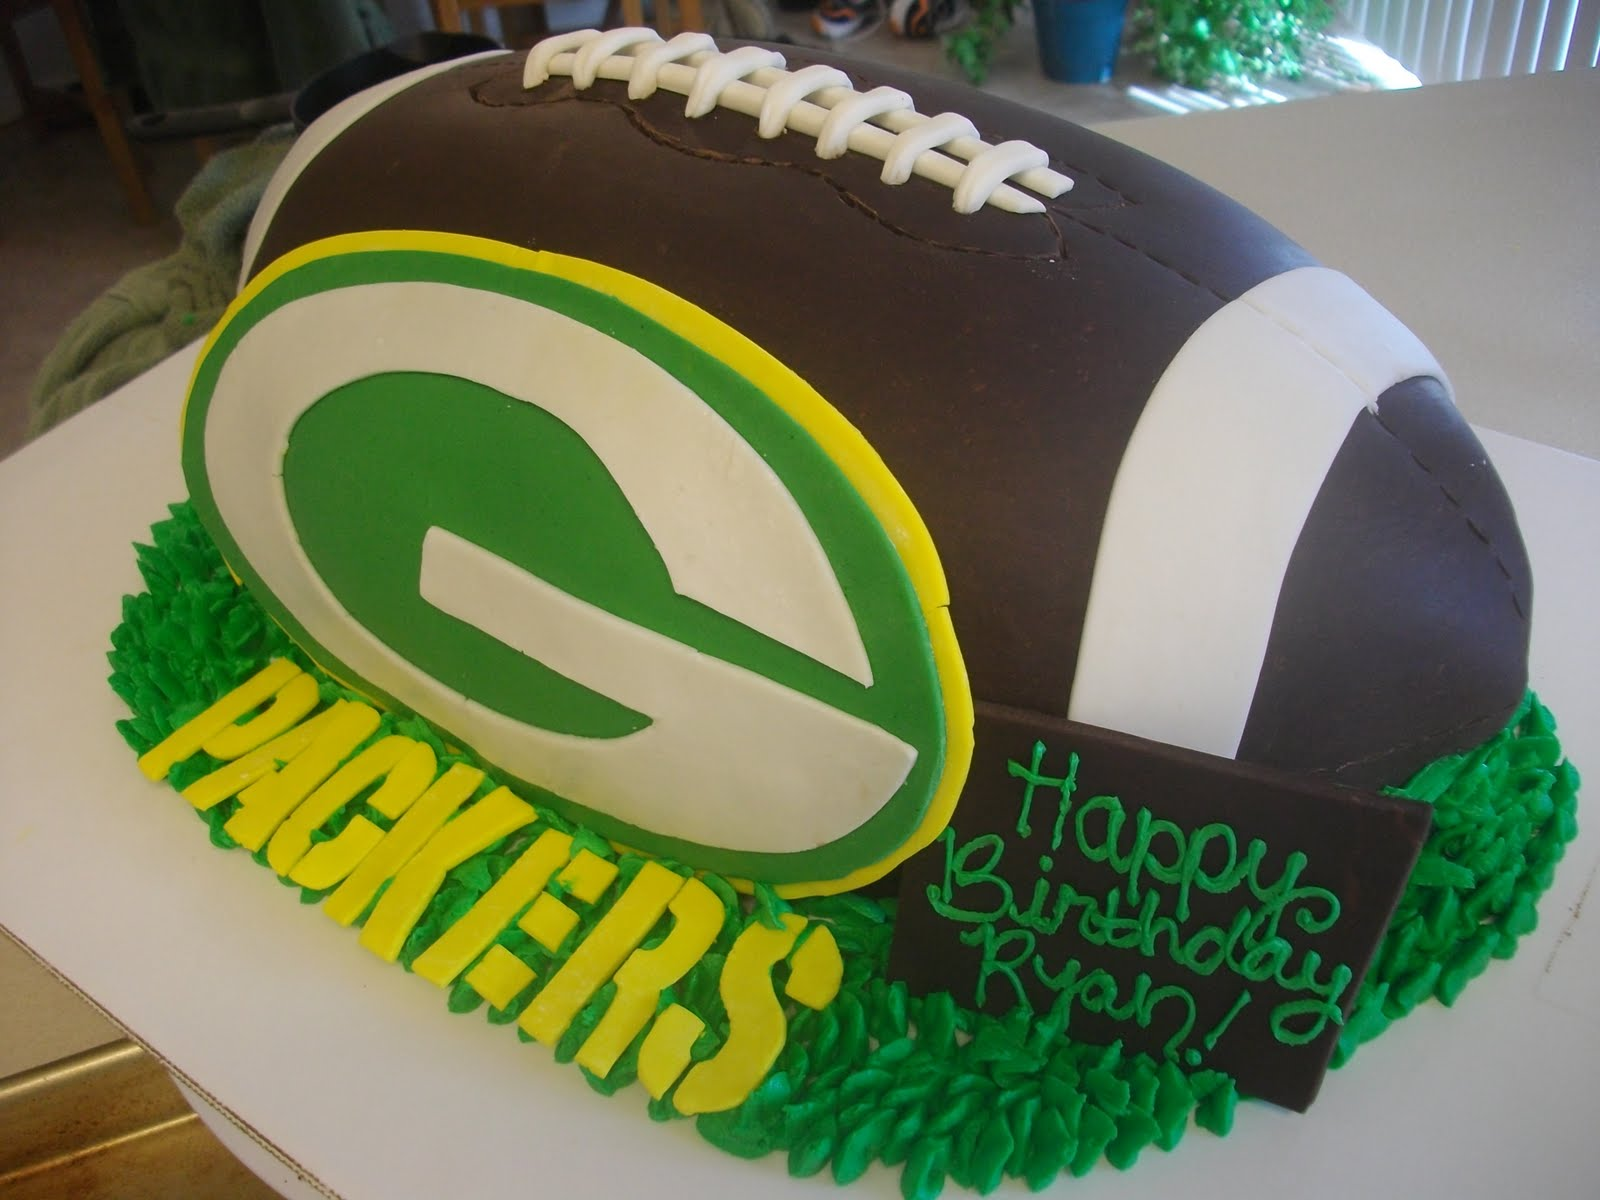 Aubrys Cakes Green Bay Packers Birthday Cake